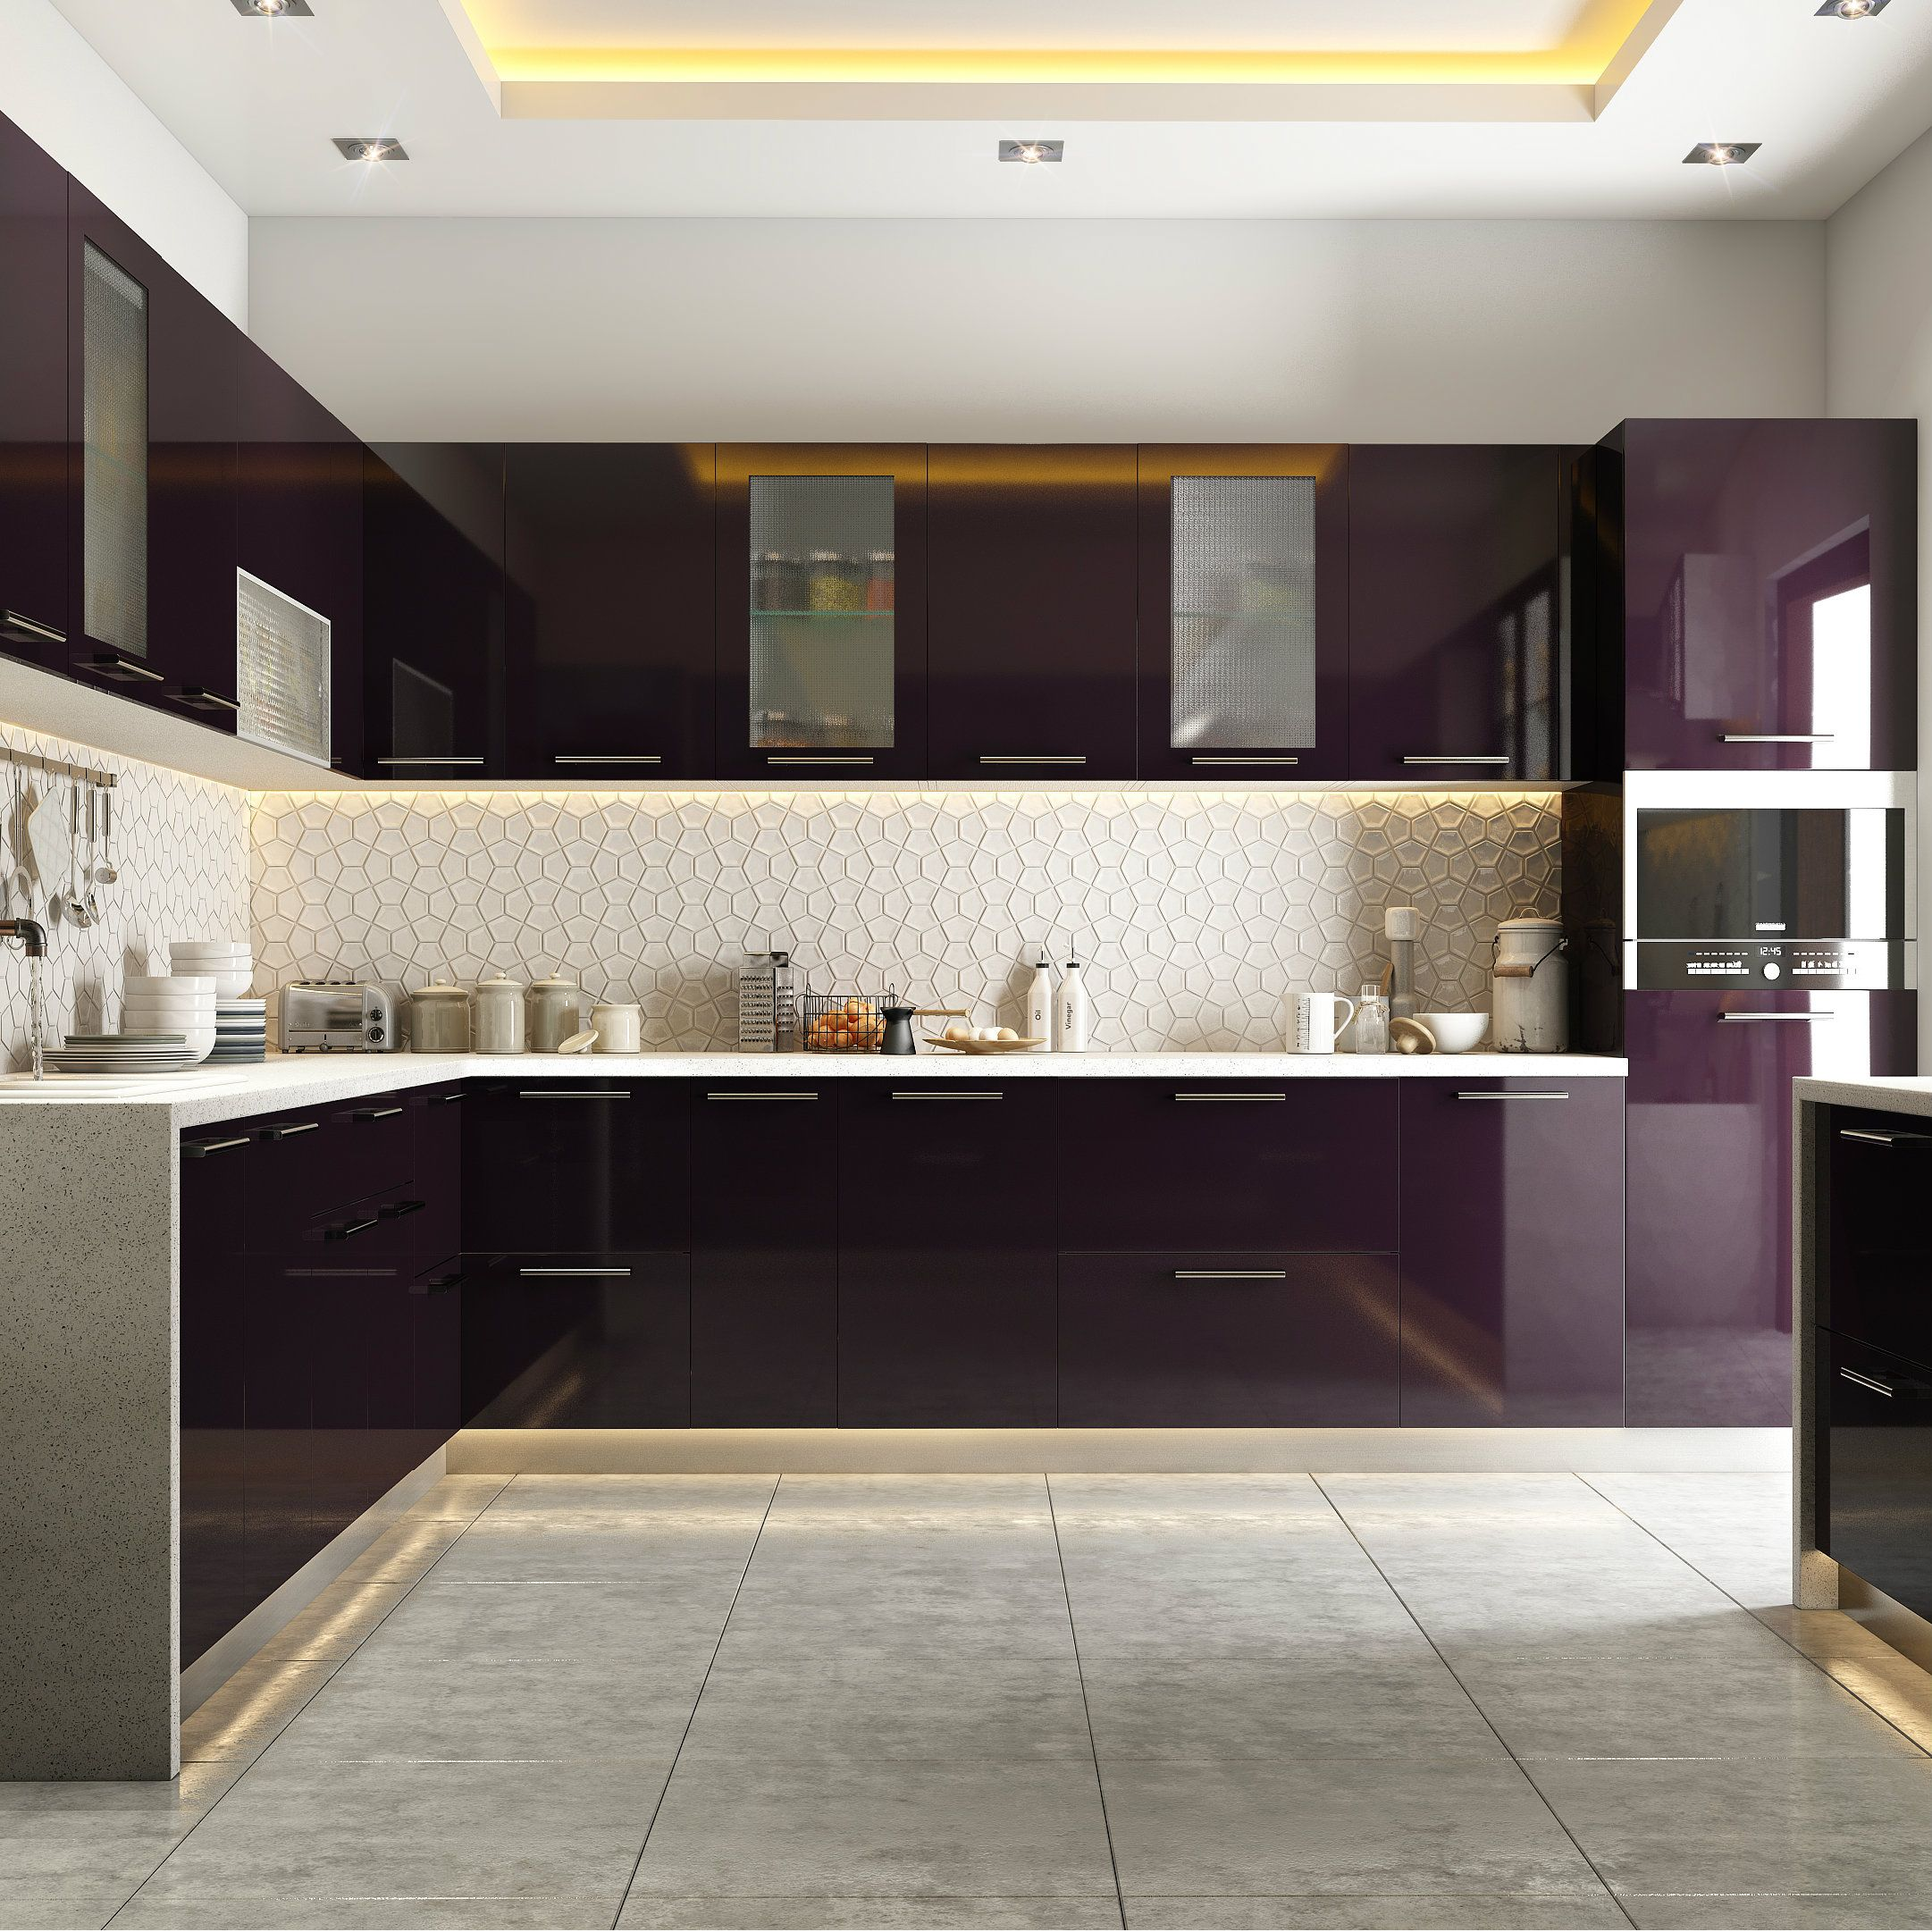 There are #kitchen themes that will inspire anyone to get ...